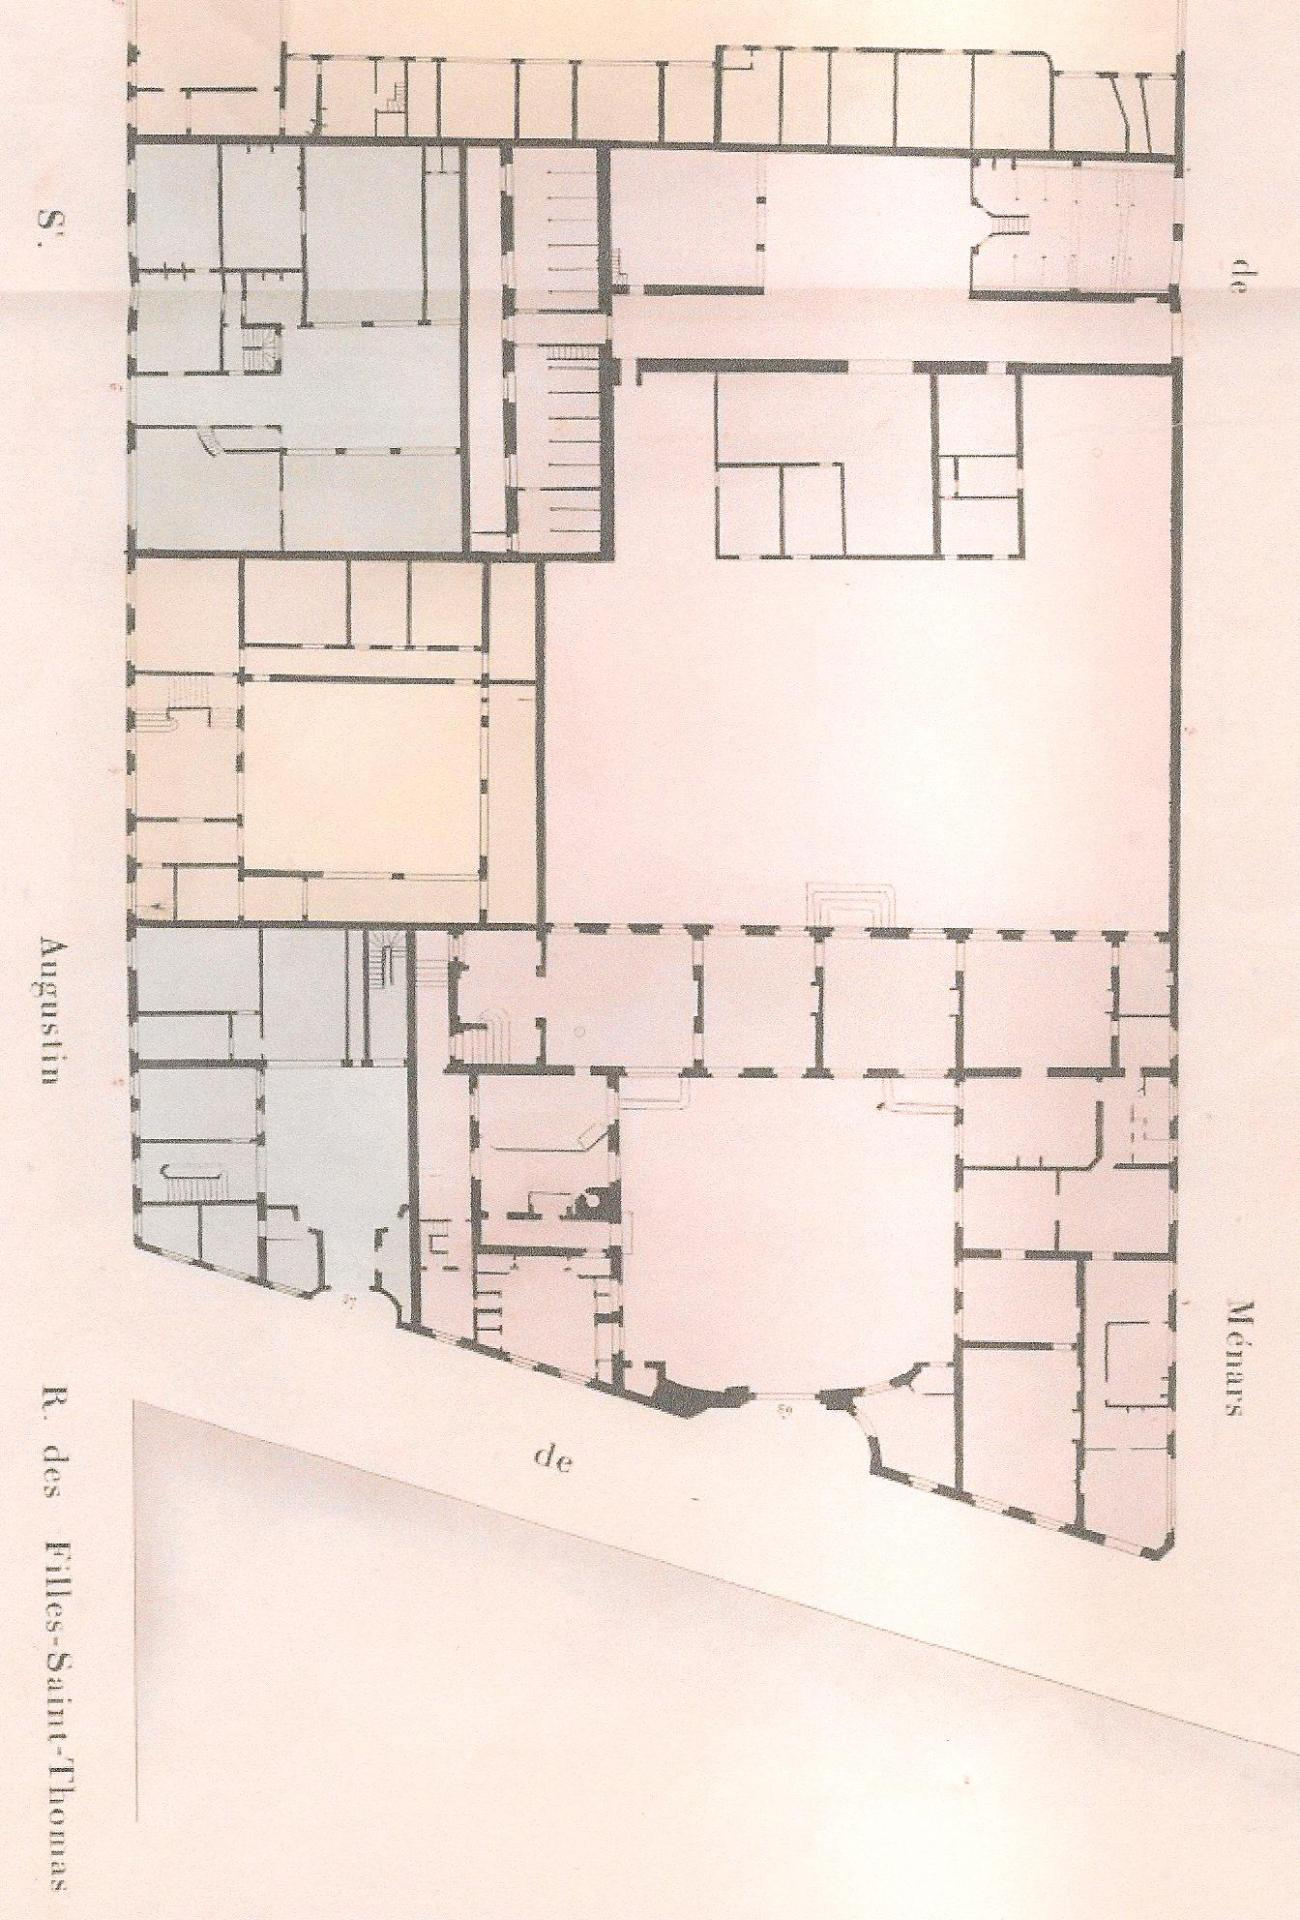 Plan cadastral de l'ensemble Boutin (grand et petit hôtel + maison à loyer), 1814, Archives nationales, F31/76, n° 21, Atlas Vasserot